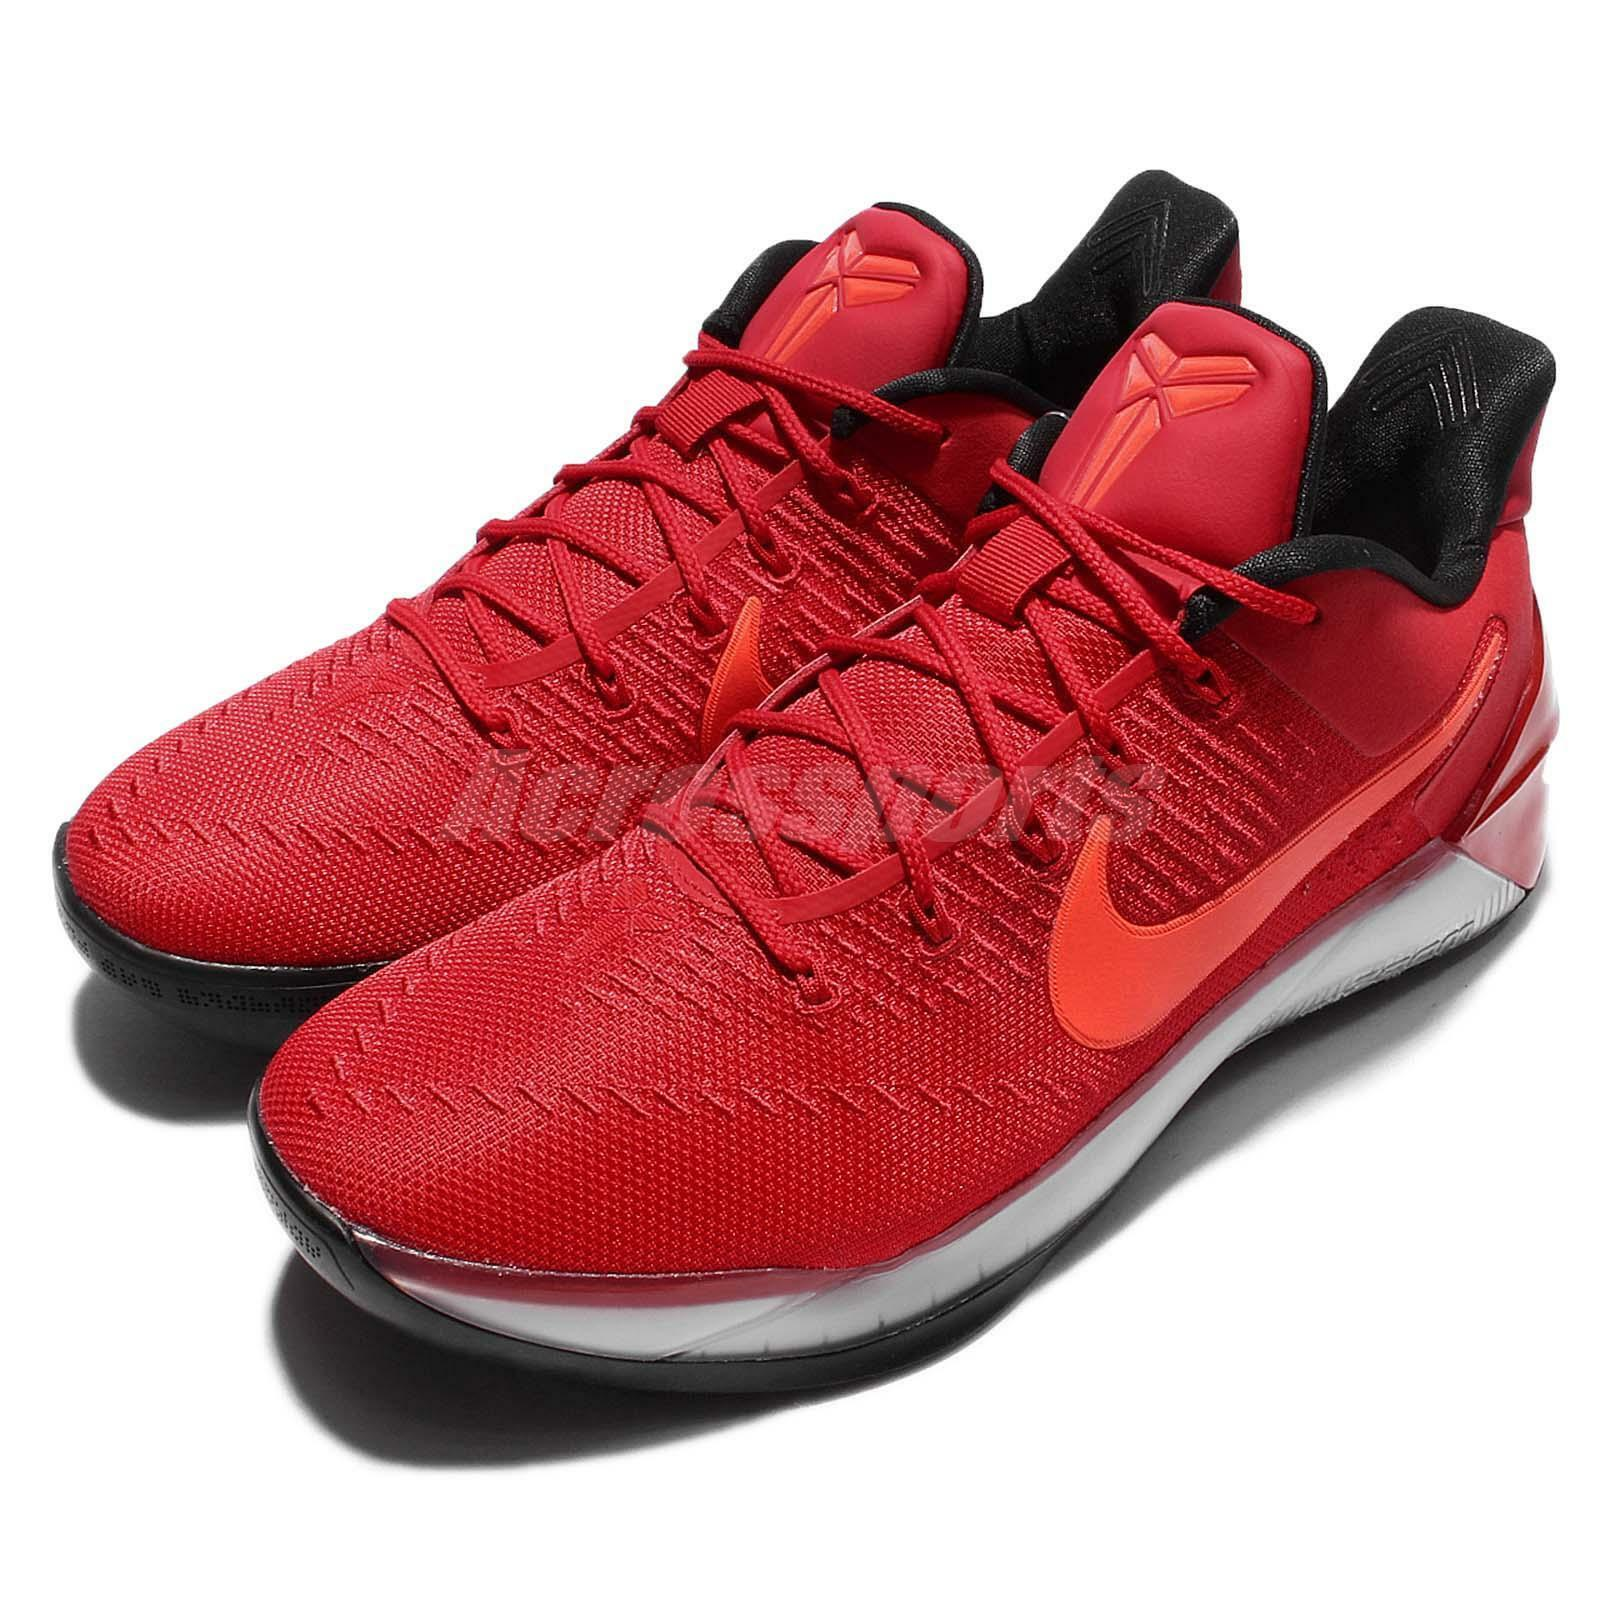 Nike Kobe A.D. EP Bryant XII 12 AD University Red Men Basketball Shoe 852427608